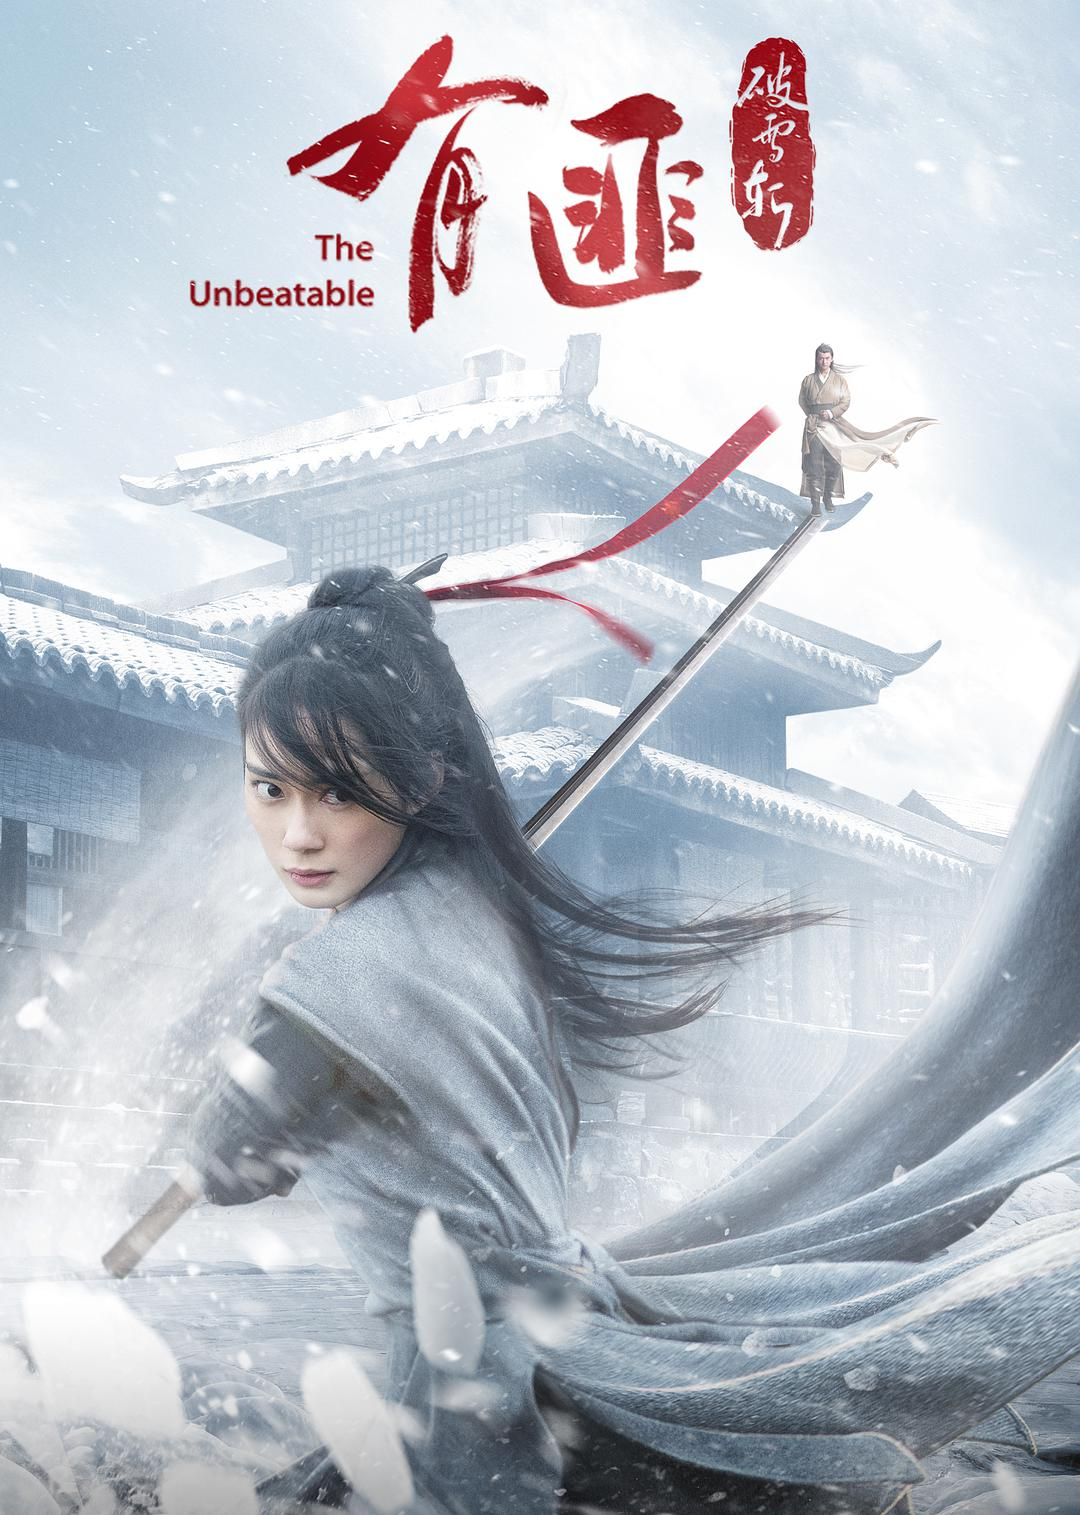 The Unbeatable (2021) Chinese Movie HDRip 720p AAC